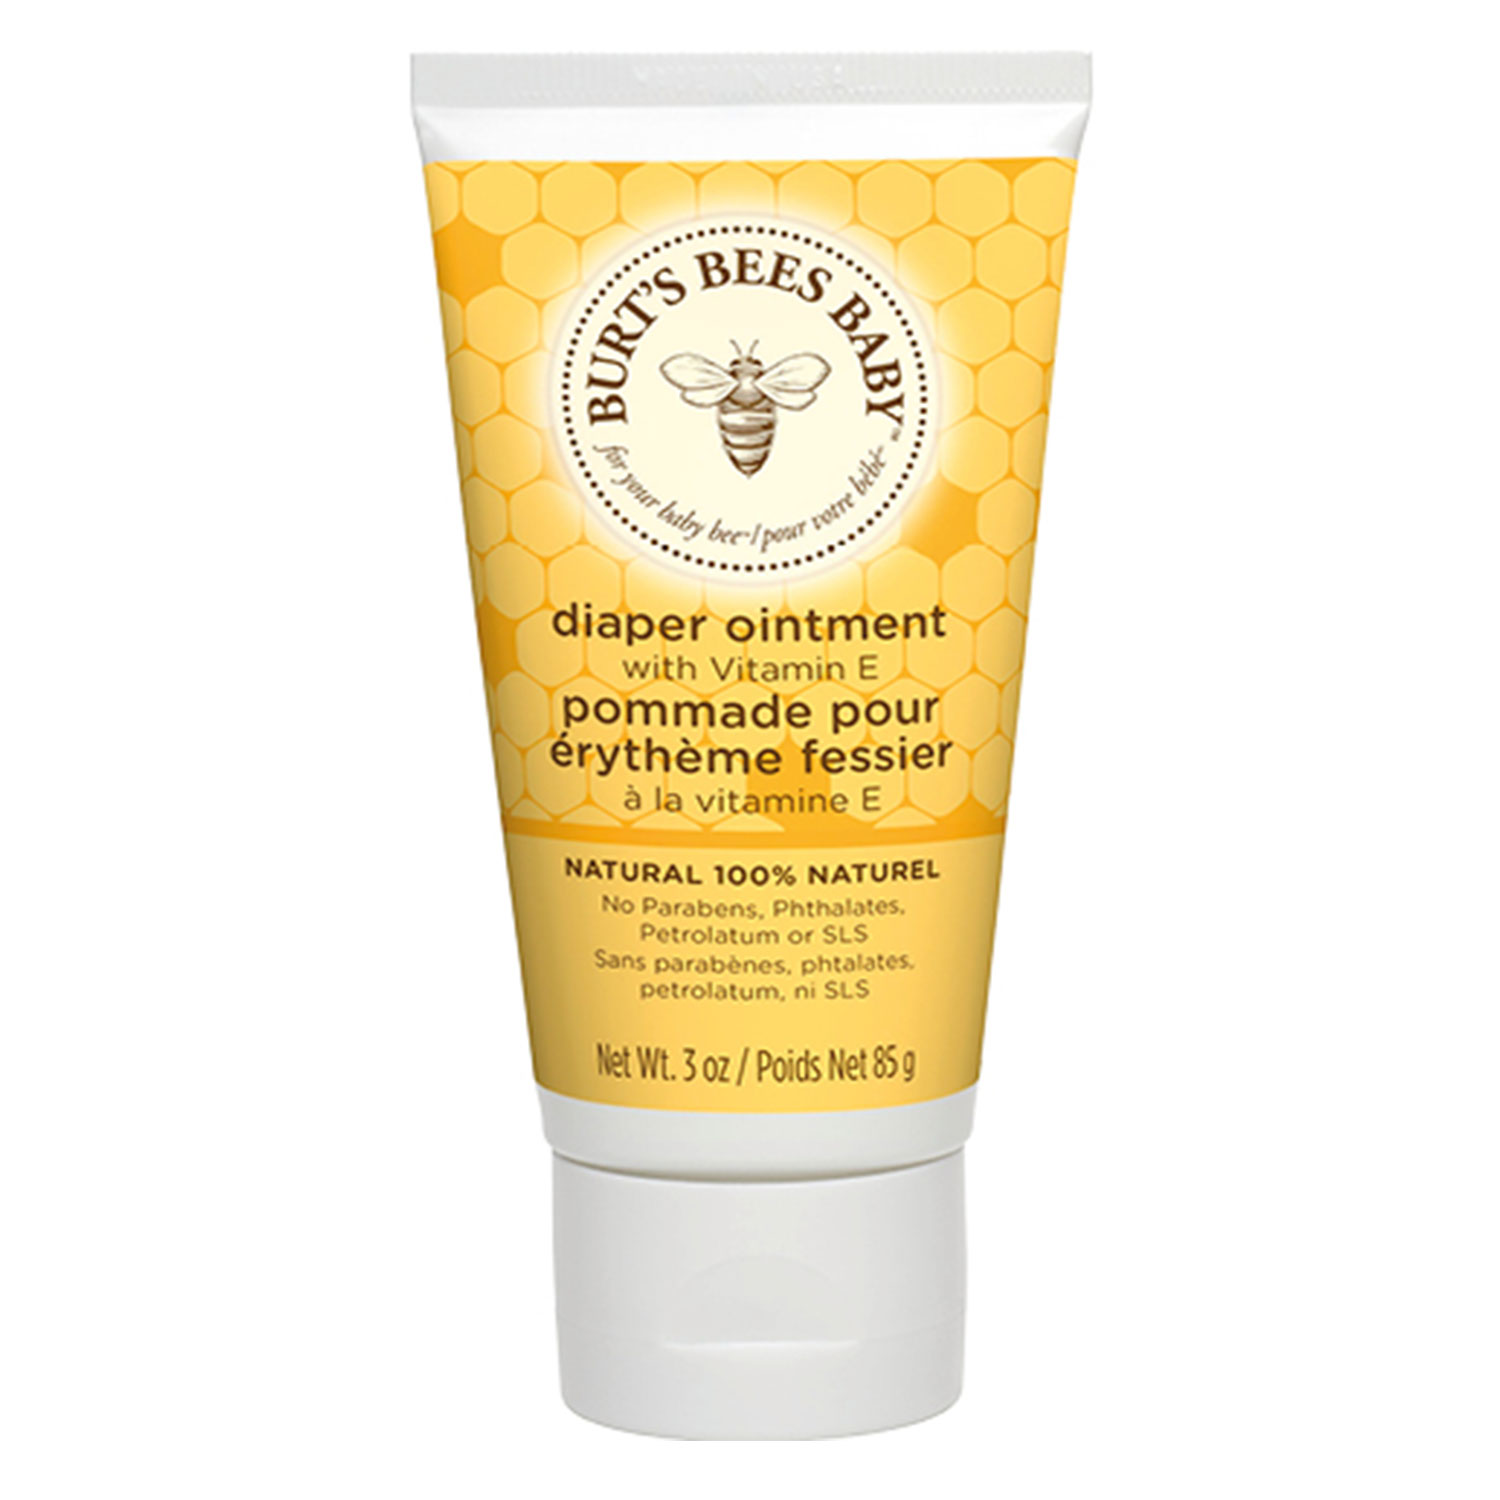 Baby Bee - Diaper Ointment